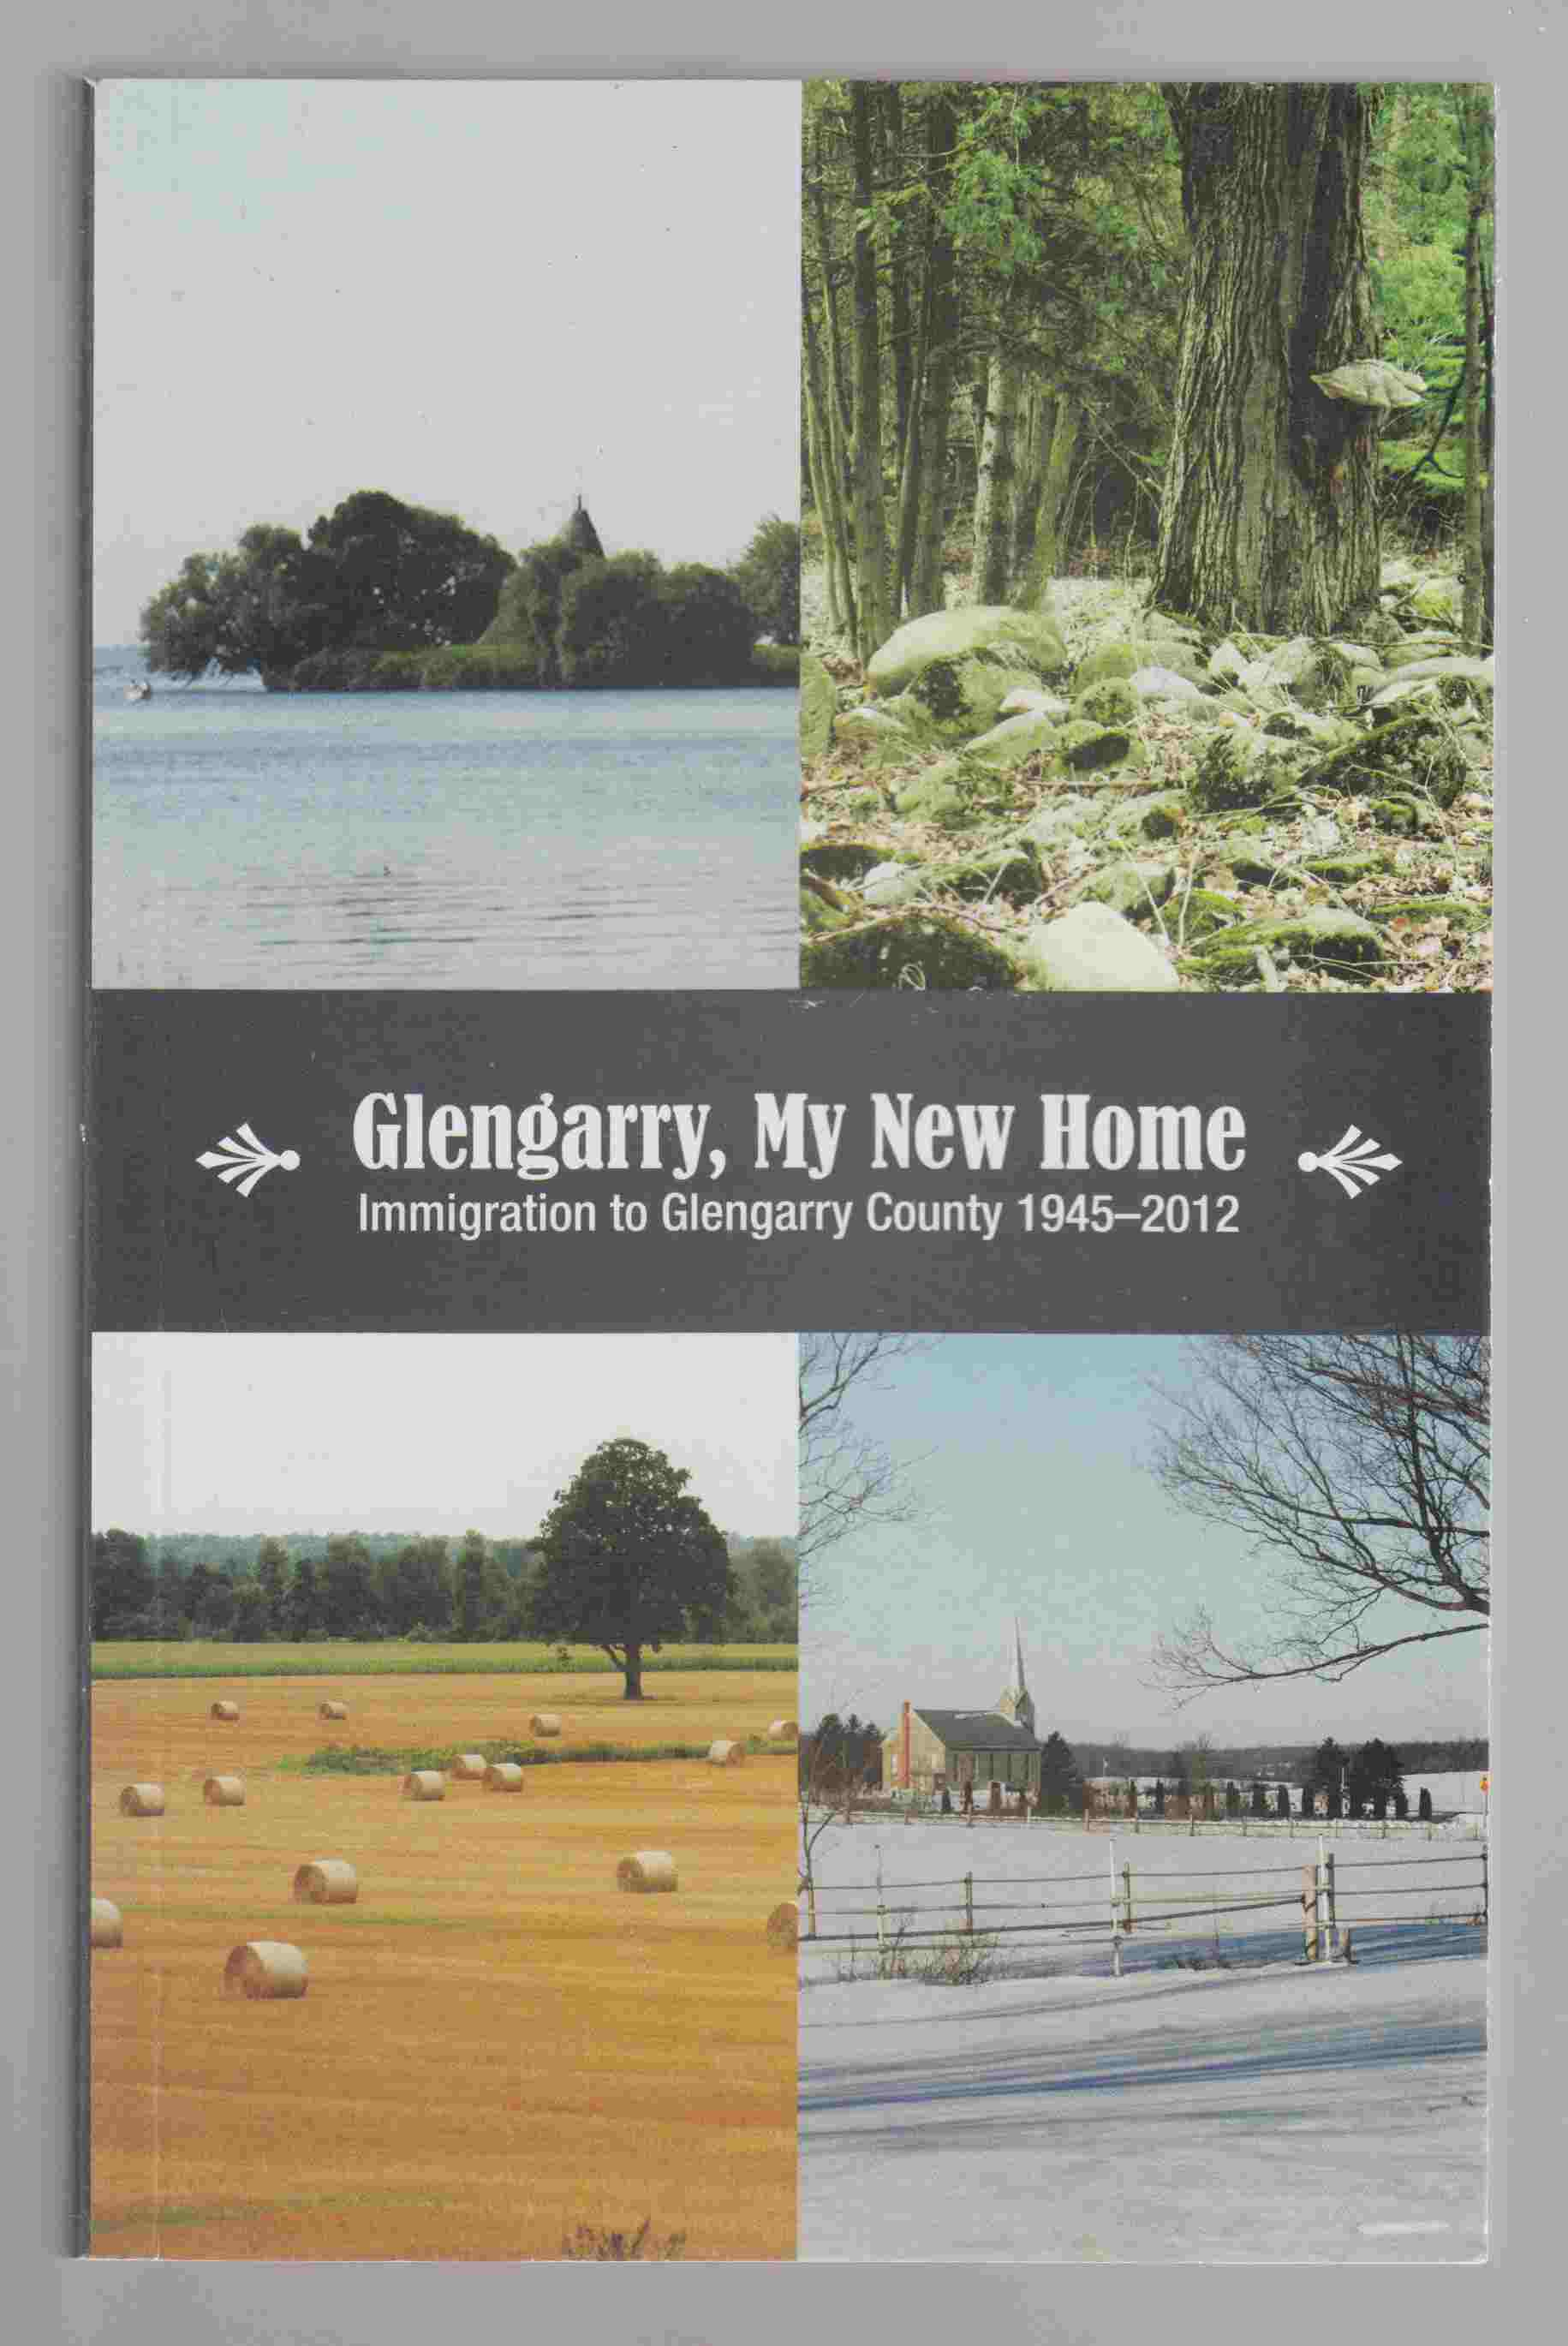 Image for Glengarry, My New Home Immigration to Glengarry County 1945-2012